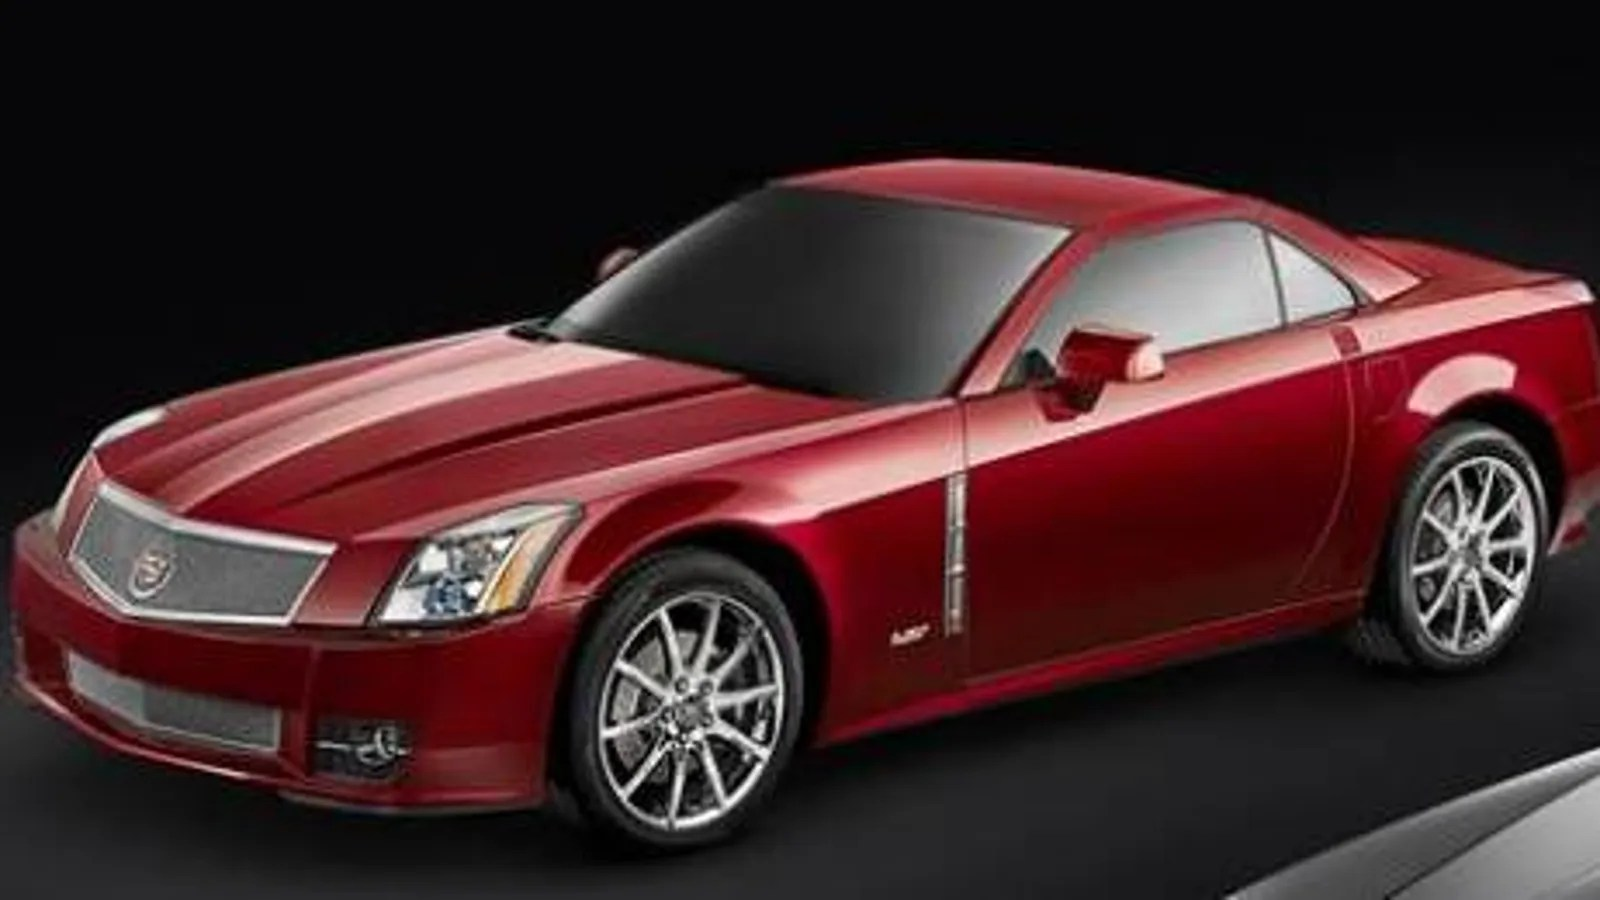 2009 Cadillac Xlr V Revealed Along With A Load Of Images